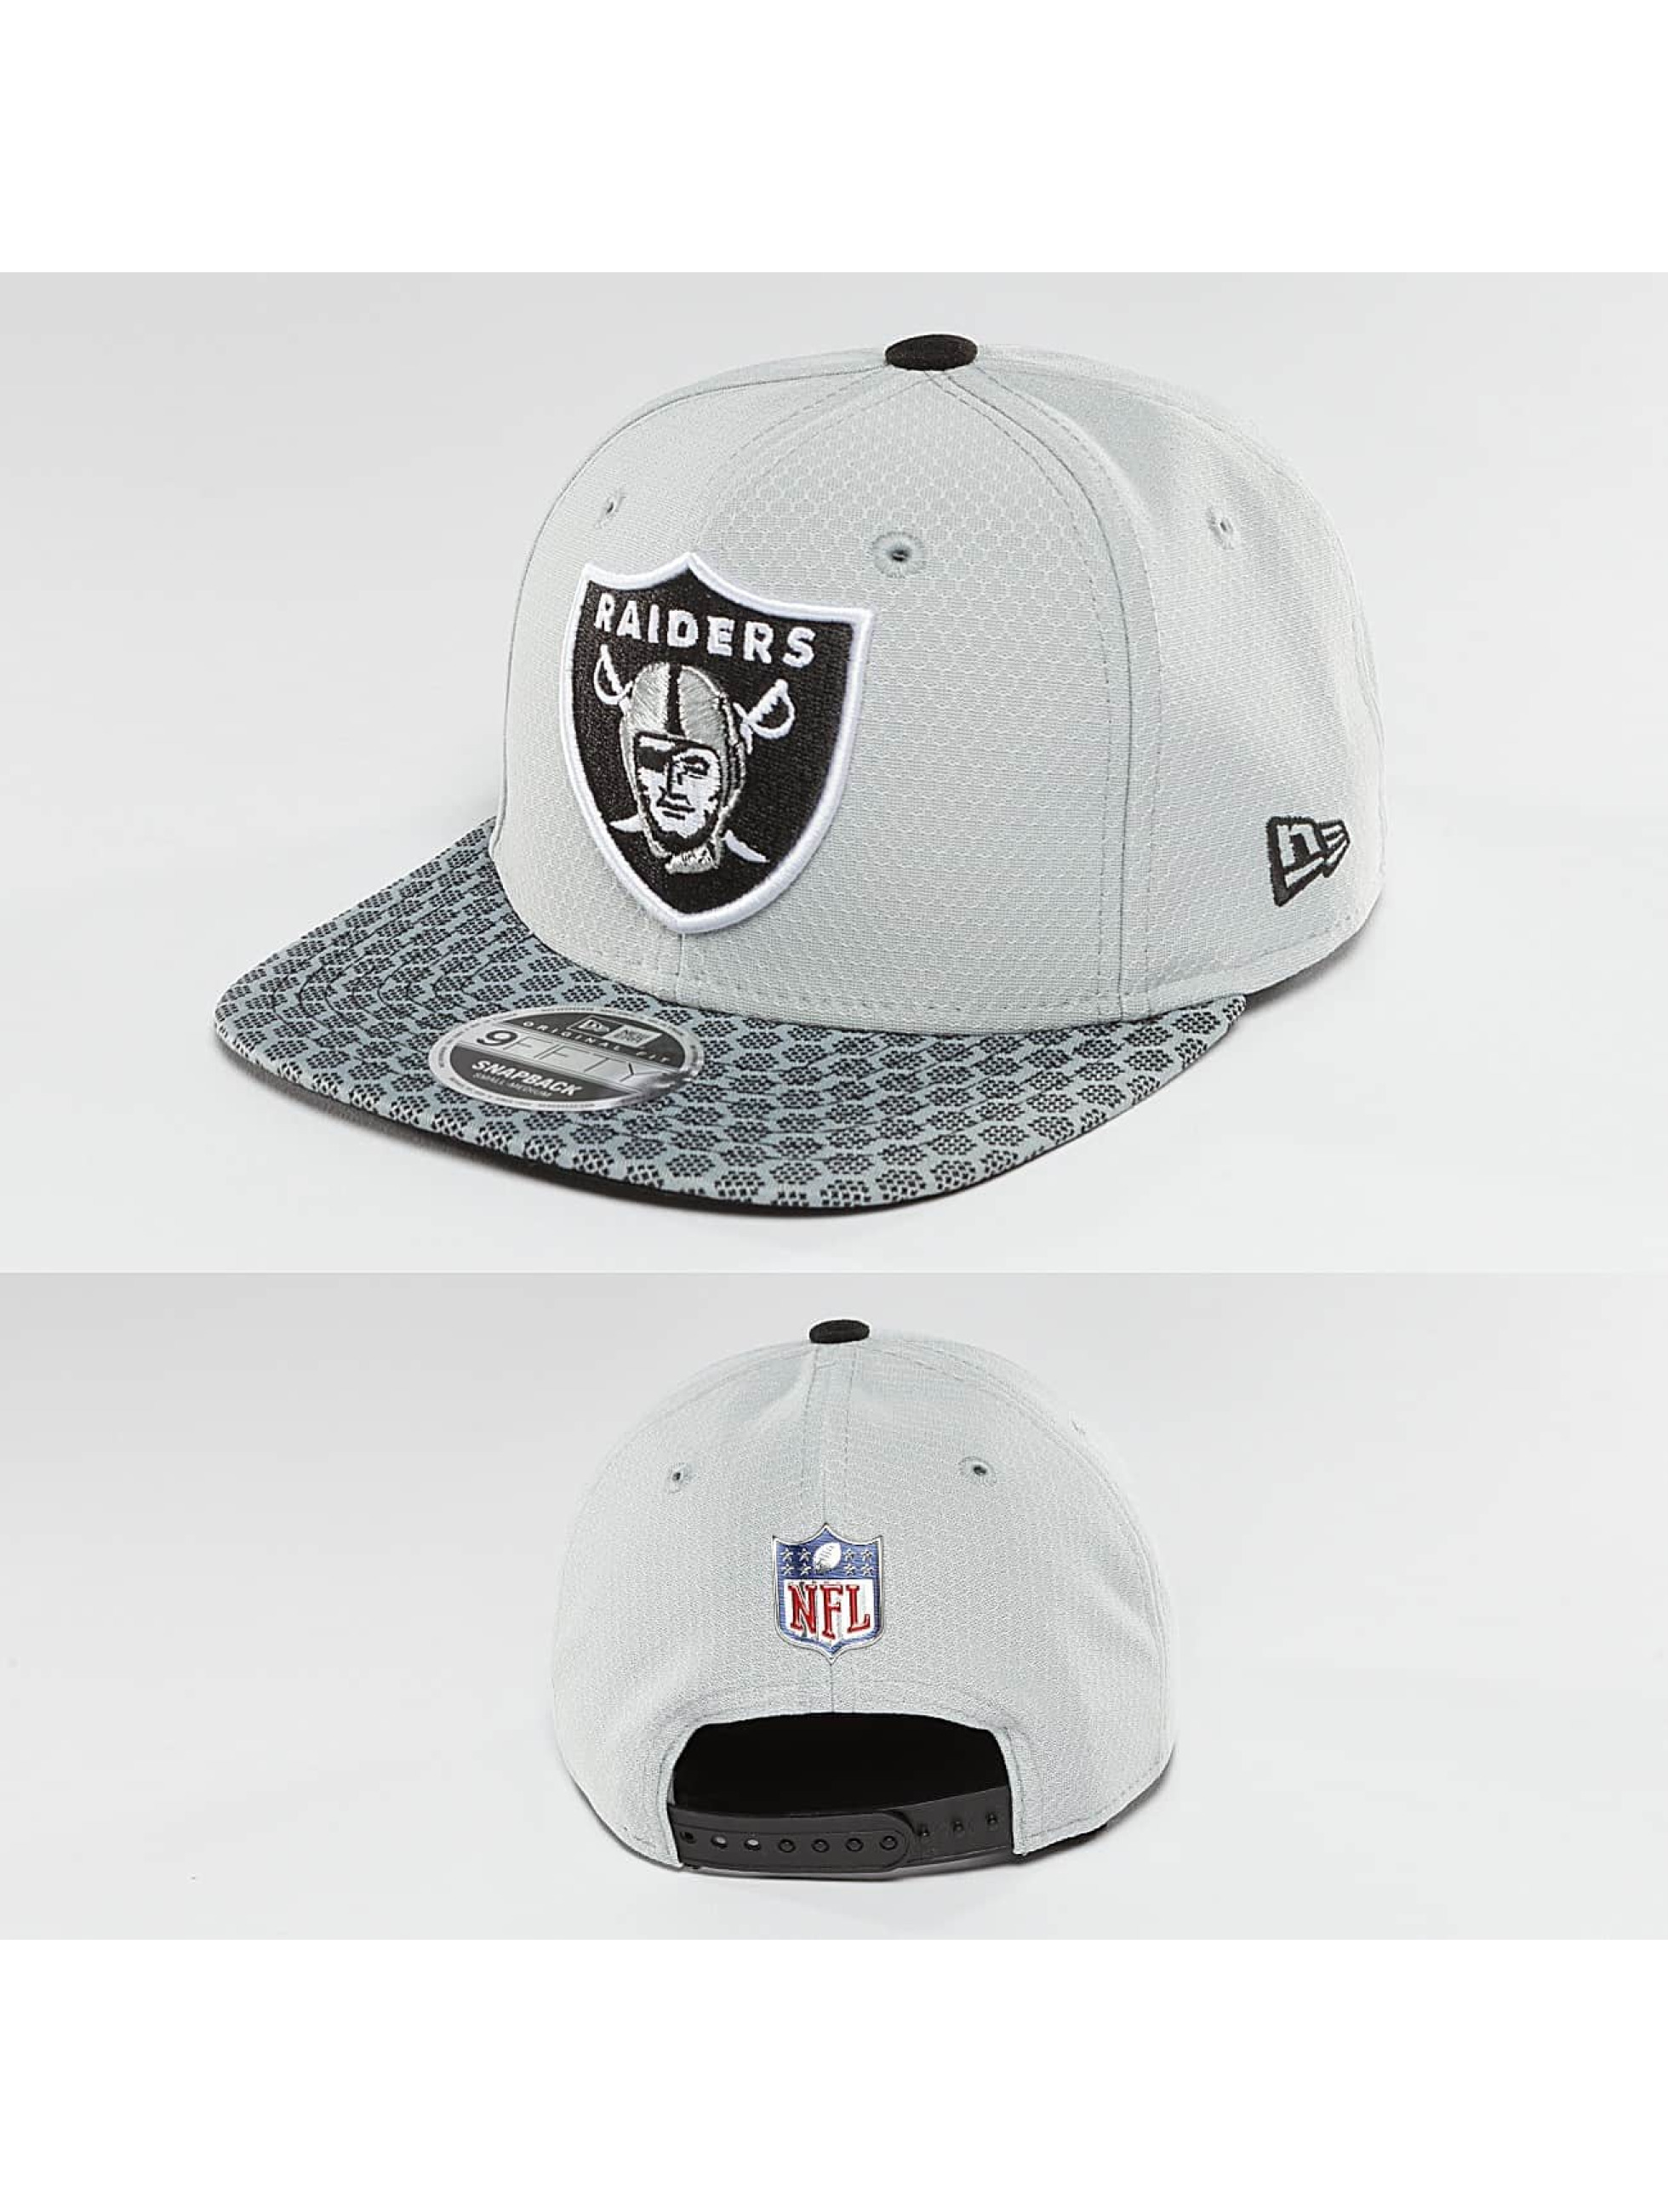 New Era Snapback Cap NFL On Field Oakland Raiders 9Fifty silver colored